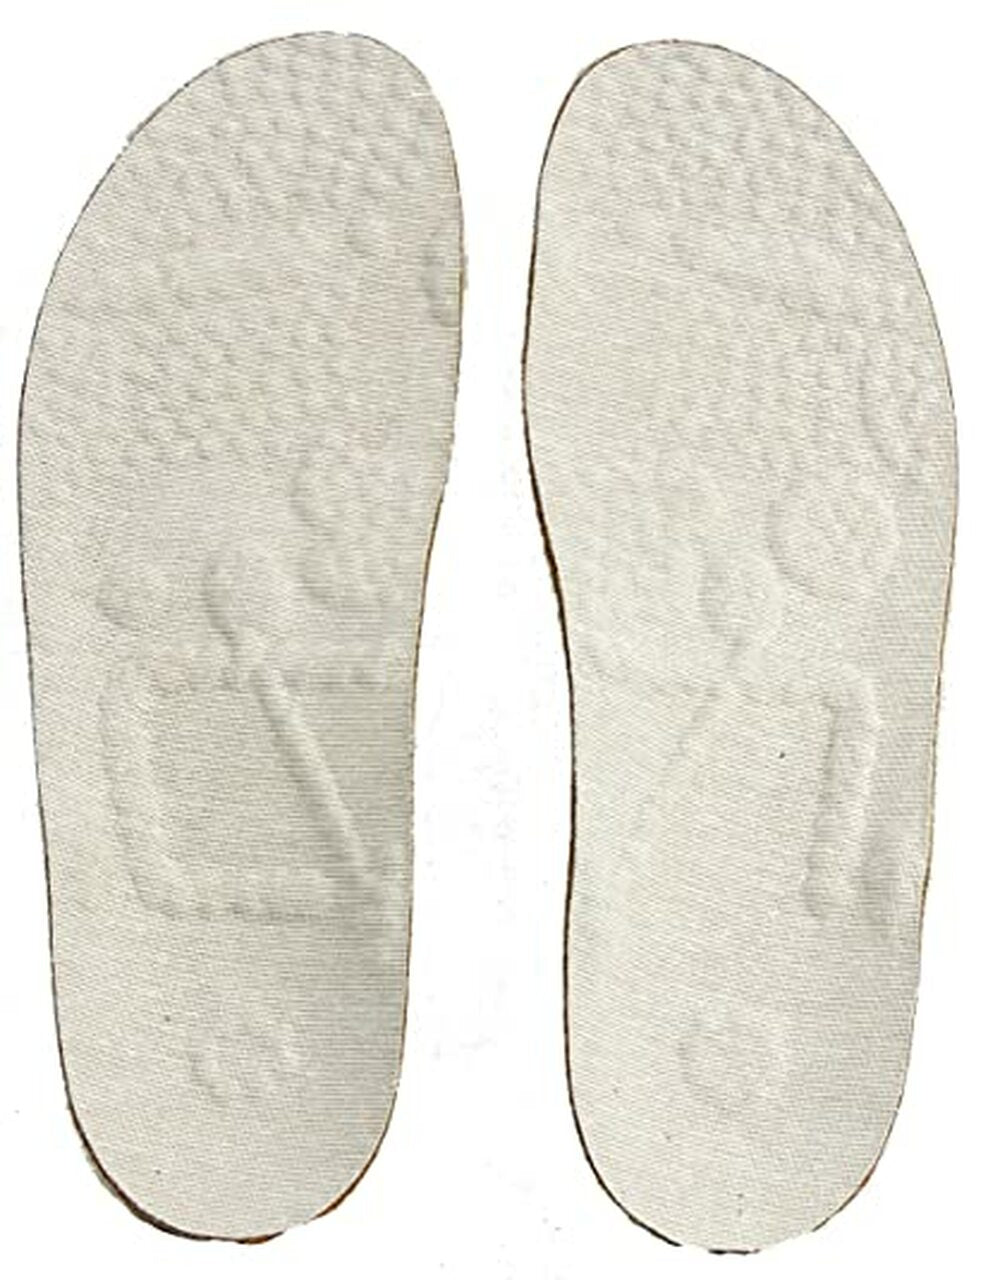 Fashion Line - Reflexology Footbeds